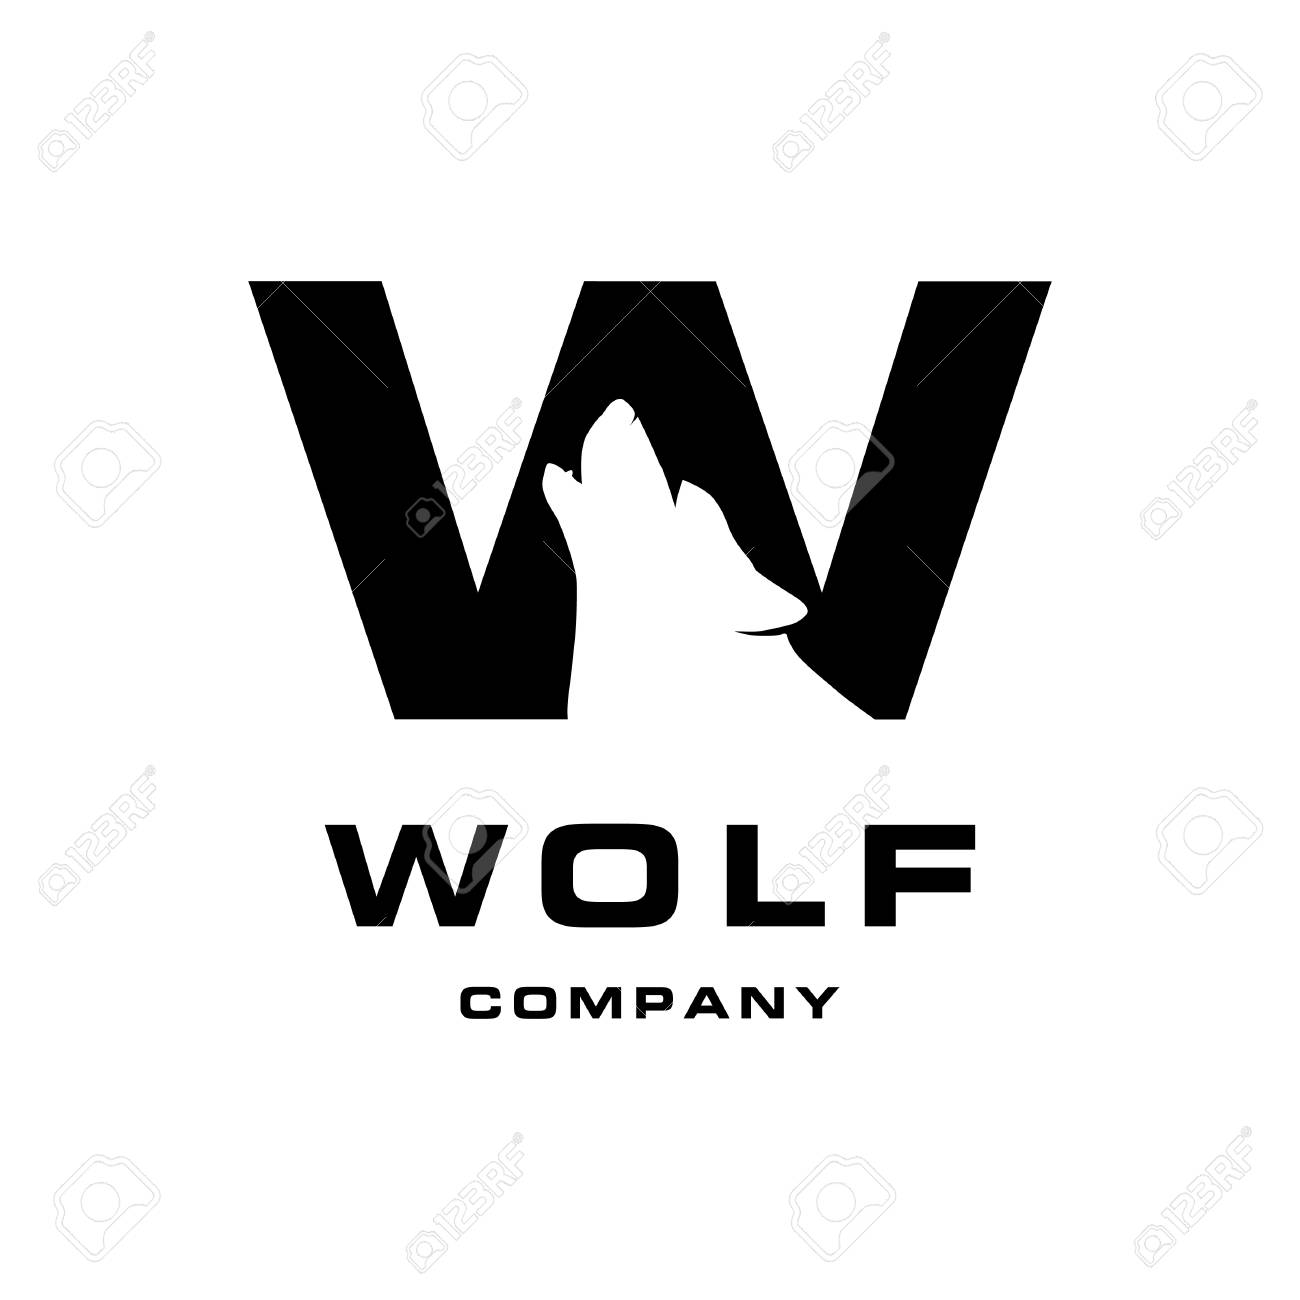 Letter W And Wolf Negative Space Royalty Free Cliparts Vectors